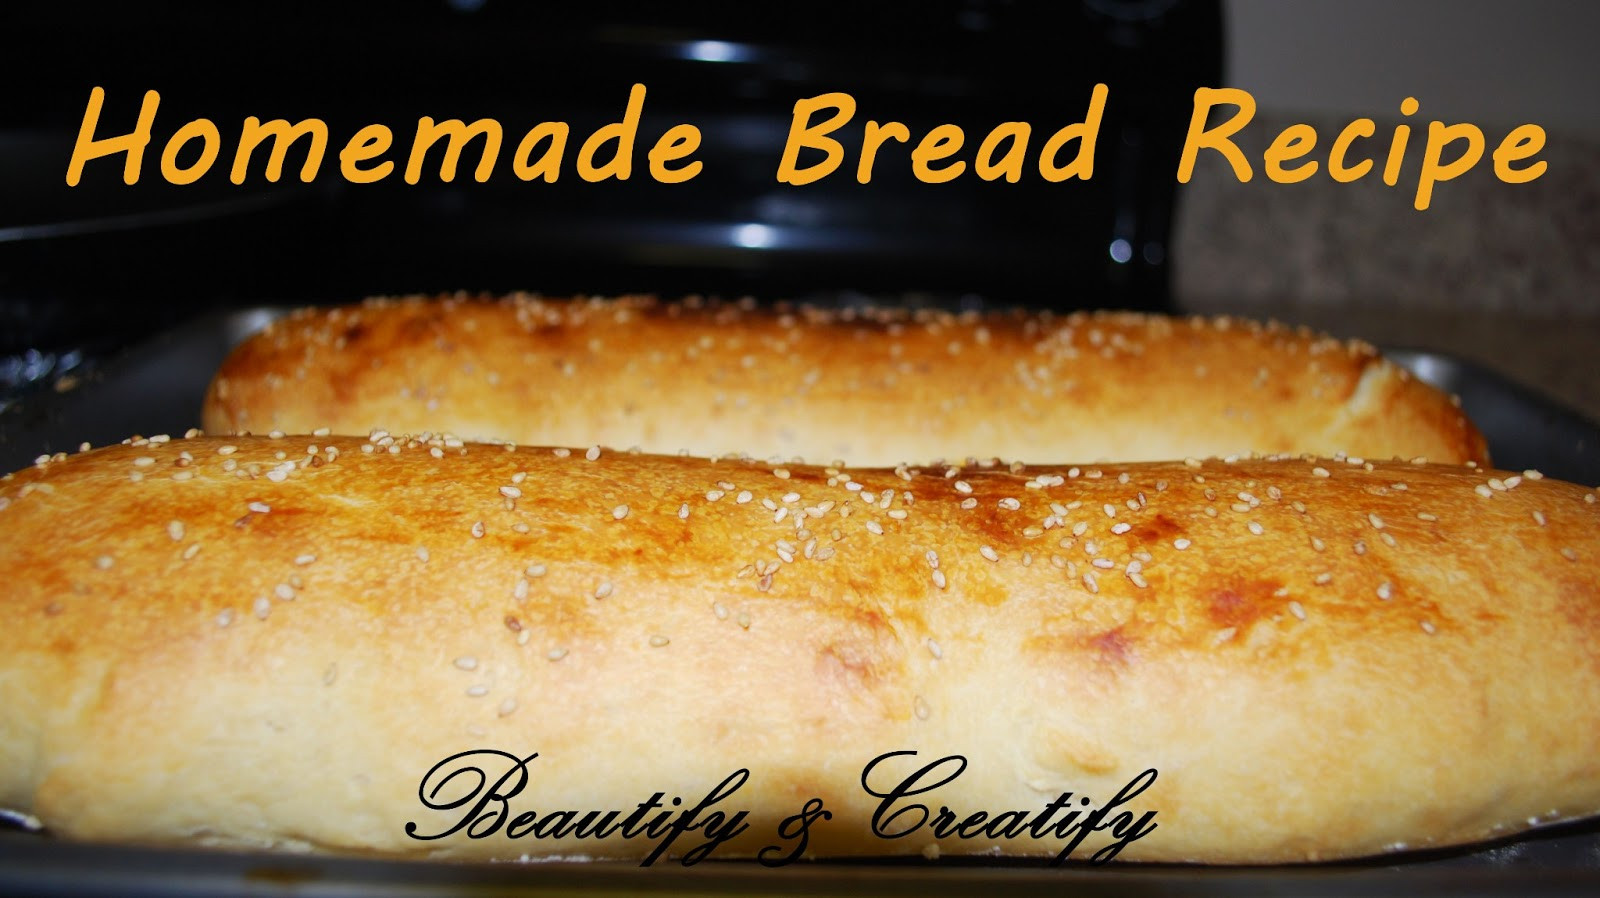 Easy Homemade Bread Recipe  Beautify and Creatify Easy Homemade Bread Recipe